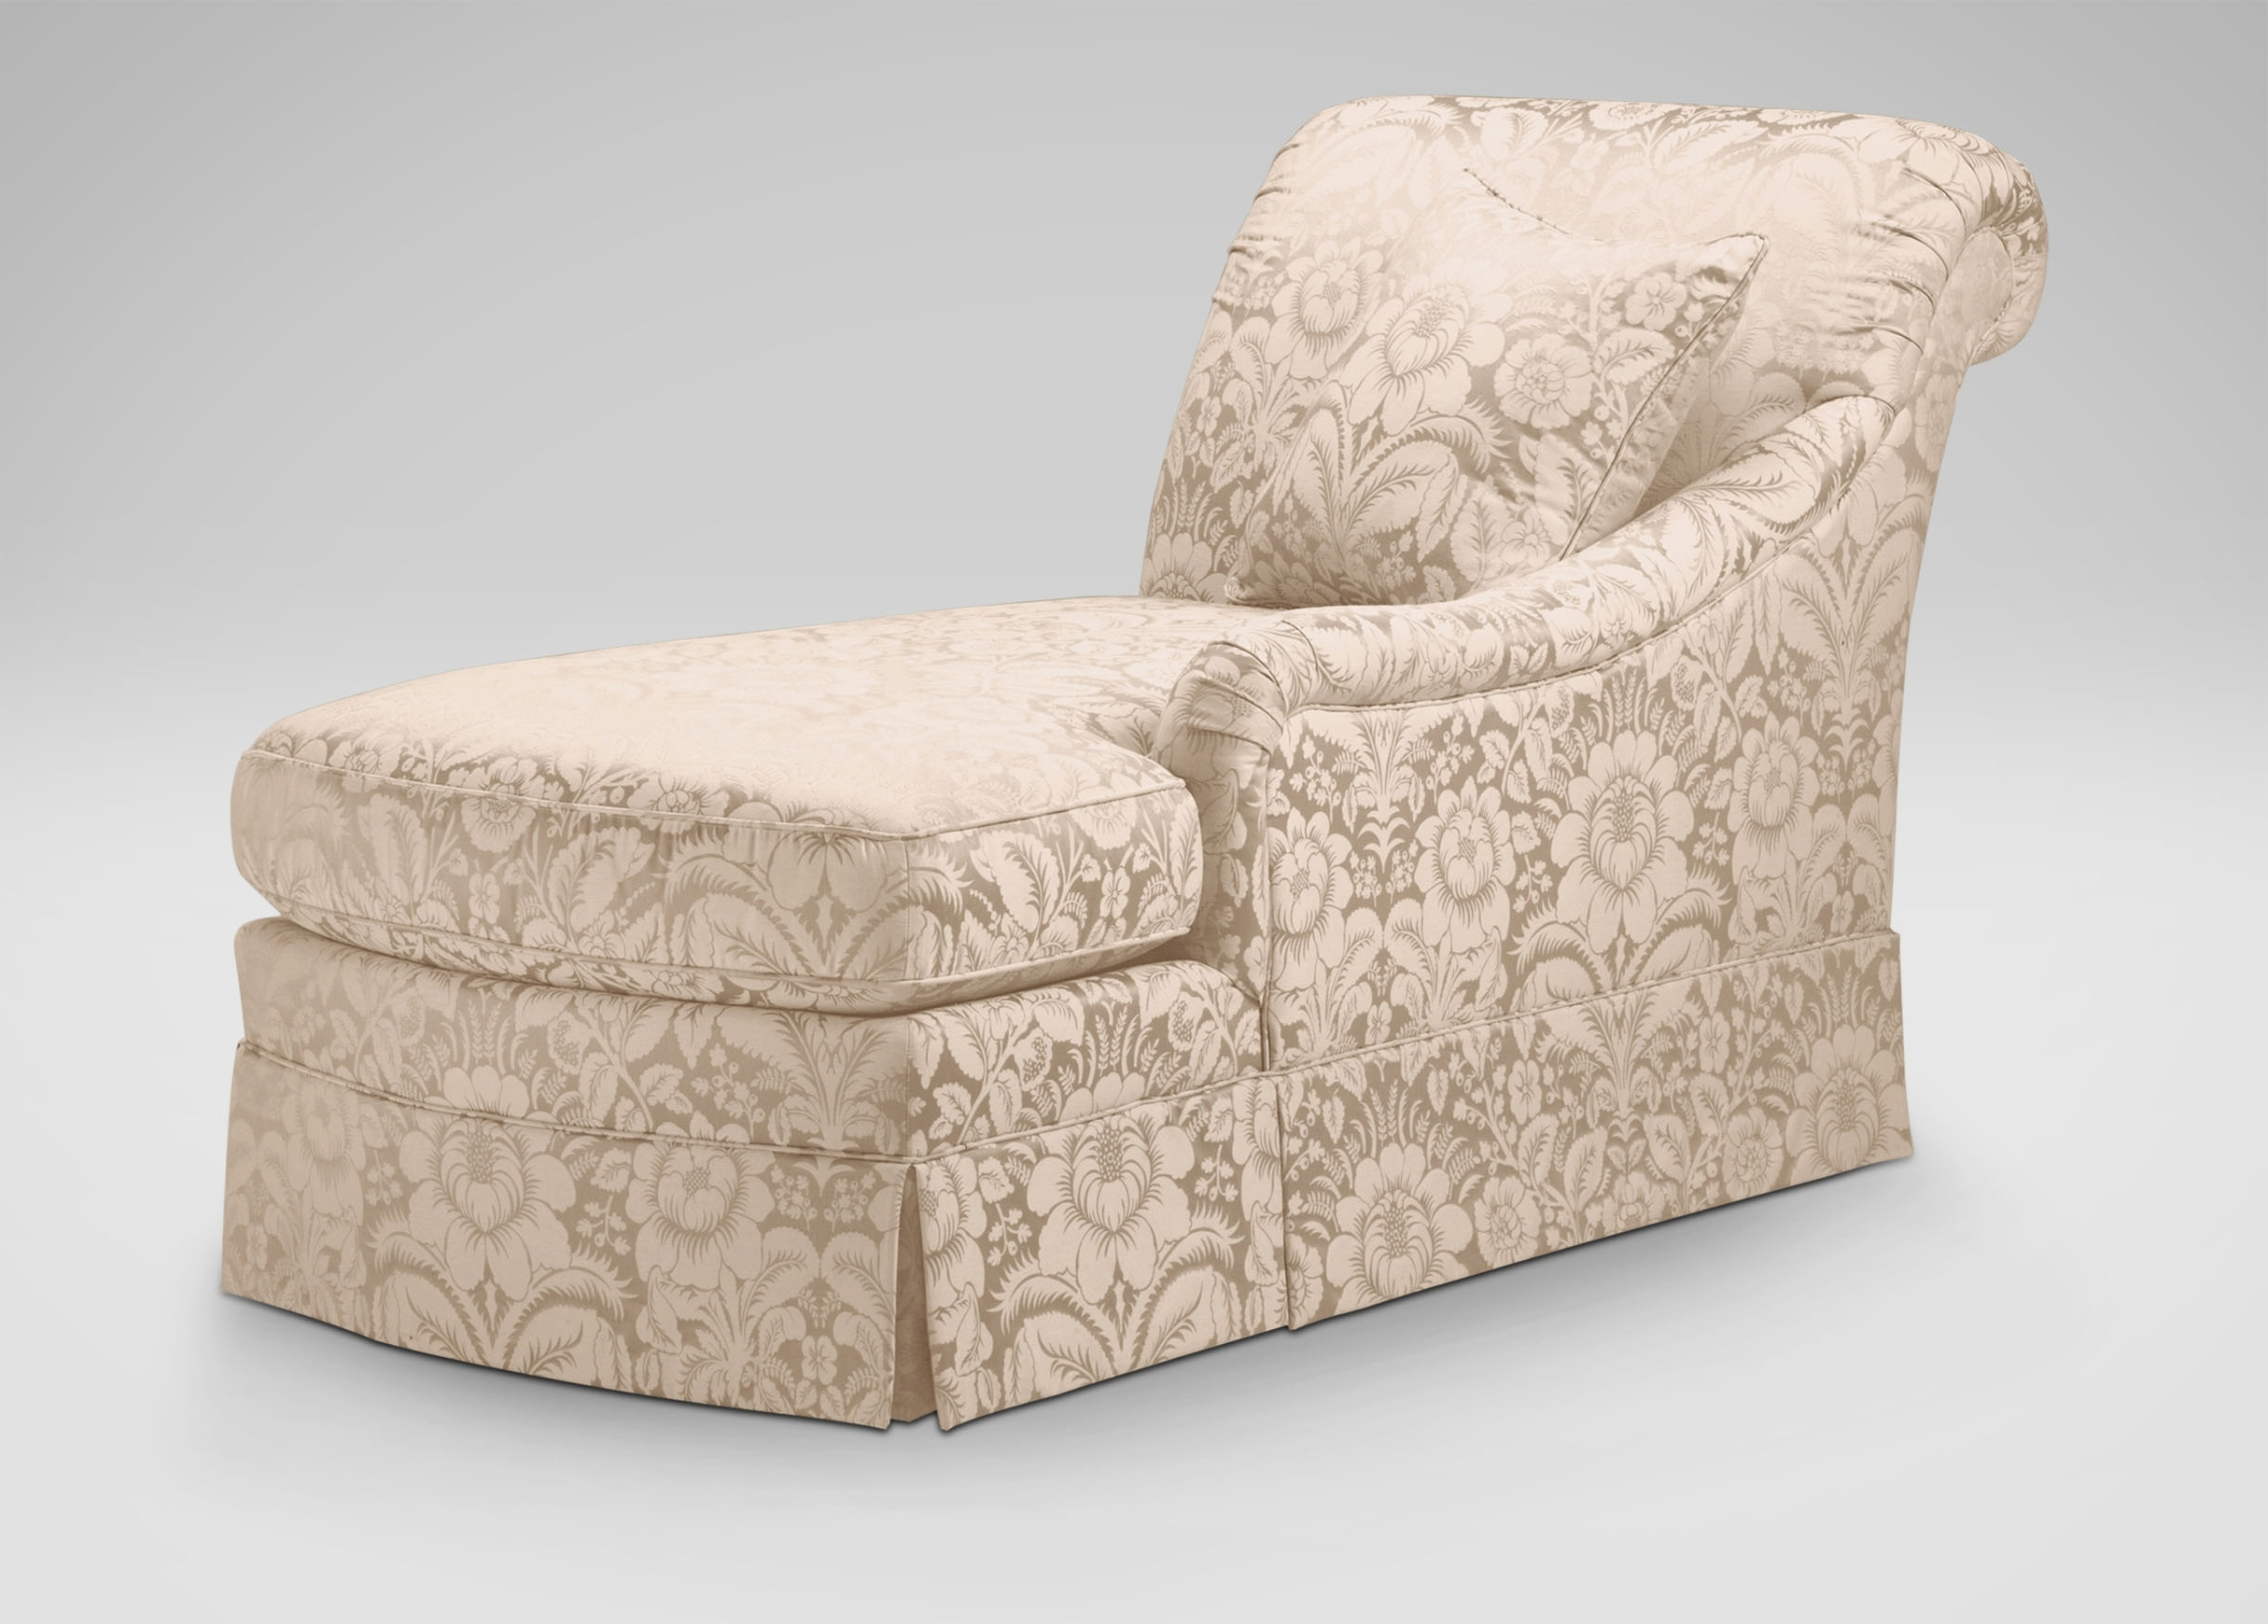 Well Known Chaise Lounge Slipcovers – Slipcovers For Chaise Lounge Chairs With Slipcovesr For Chaise Lounge (View 8 of 15)